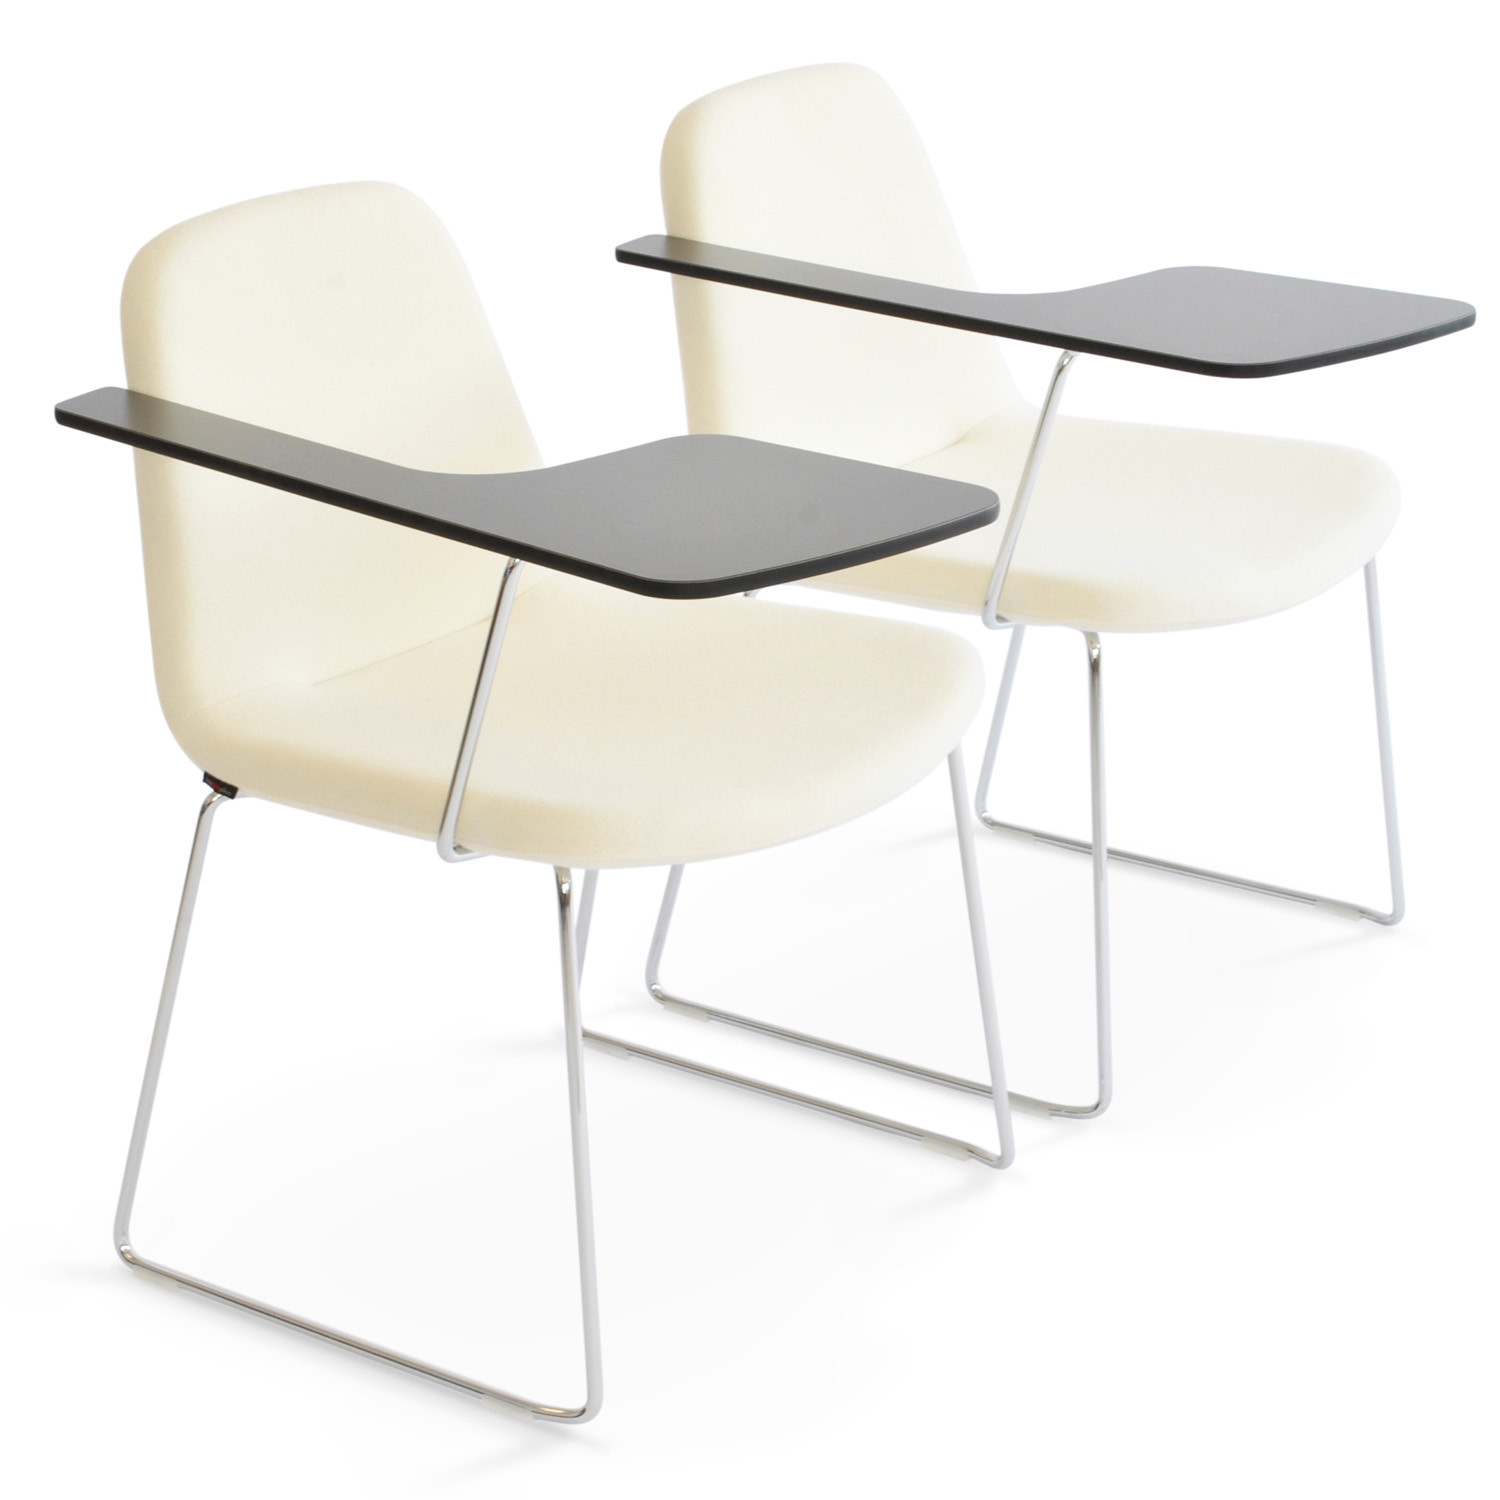 HM58d Skid Base Chairs with Writing Tablet